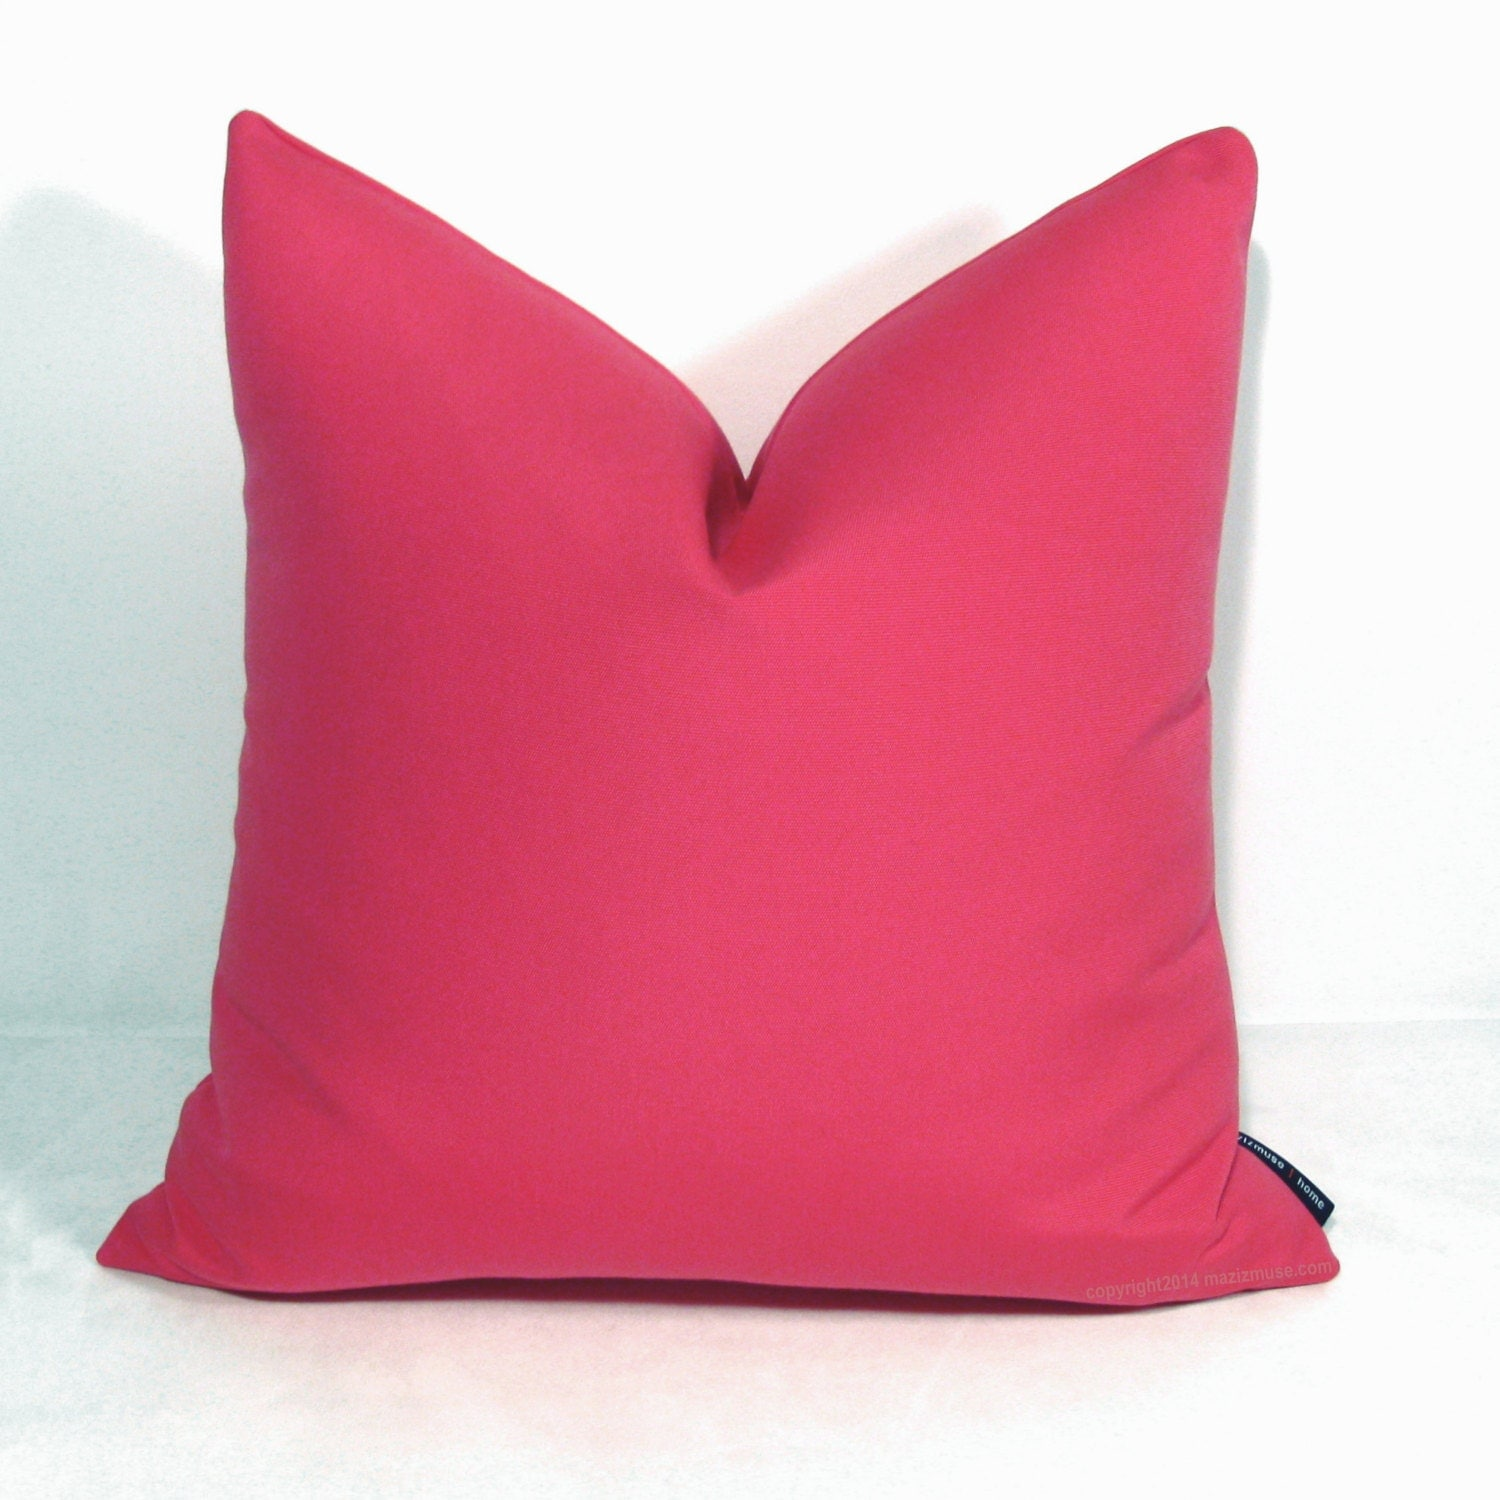 hot pink outdoor pillow cover decorative throw pillow case. Black Bedroom Furniture Sets. Home Design Ideas